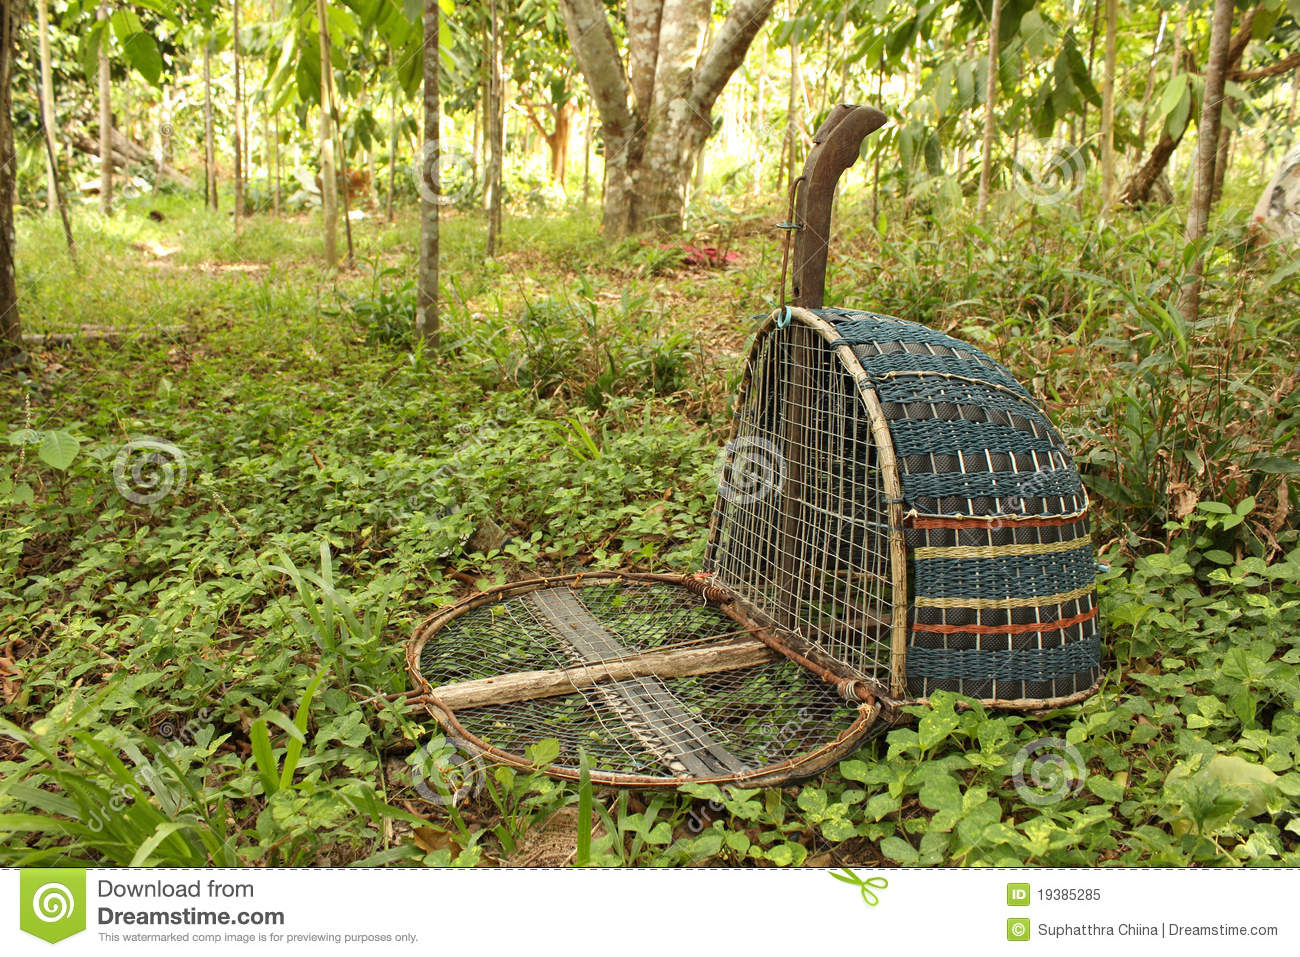 How To Build A Rabbit Trap additionally Royalty Free Stock Image Black Yellow Garden Spider Image15506116 likewise Fabriquer Piege A Lapin moreover Royalty Free Stock Photo Handmade Bird Trap Image19385285 together with Onewaydoor. on animal trap plans